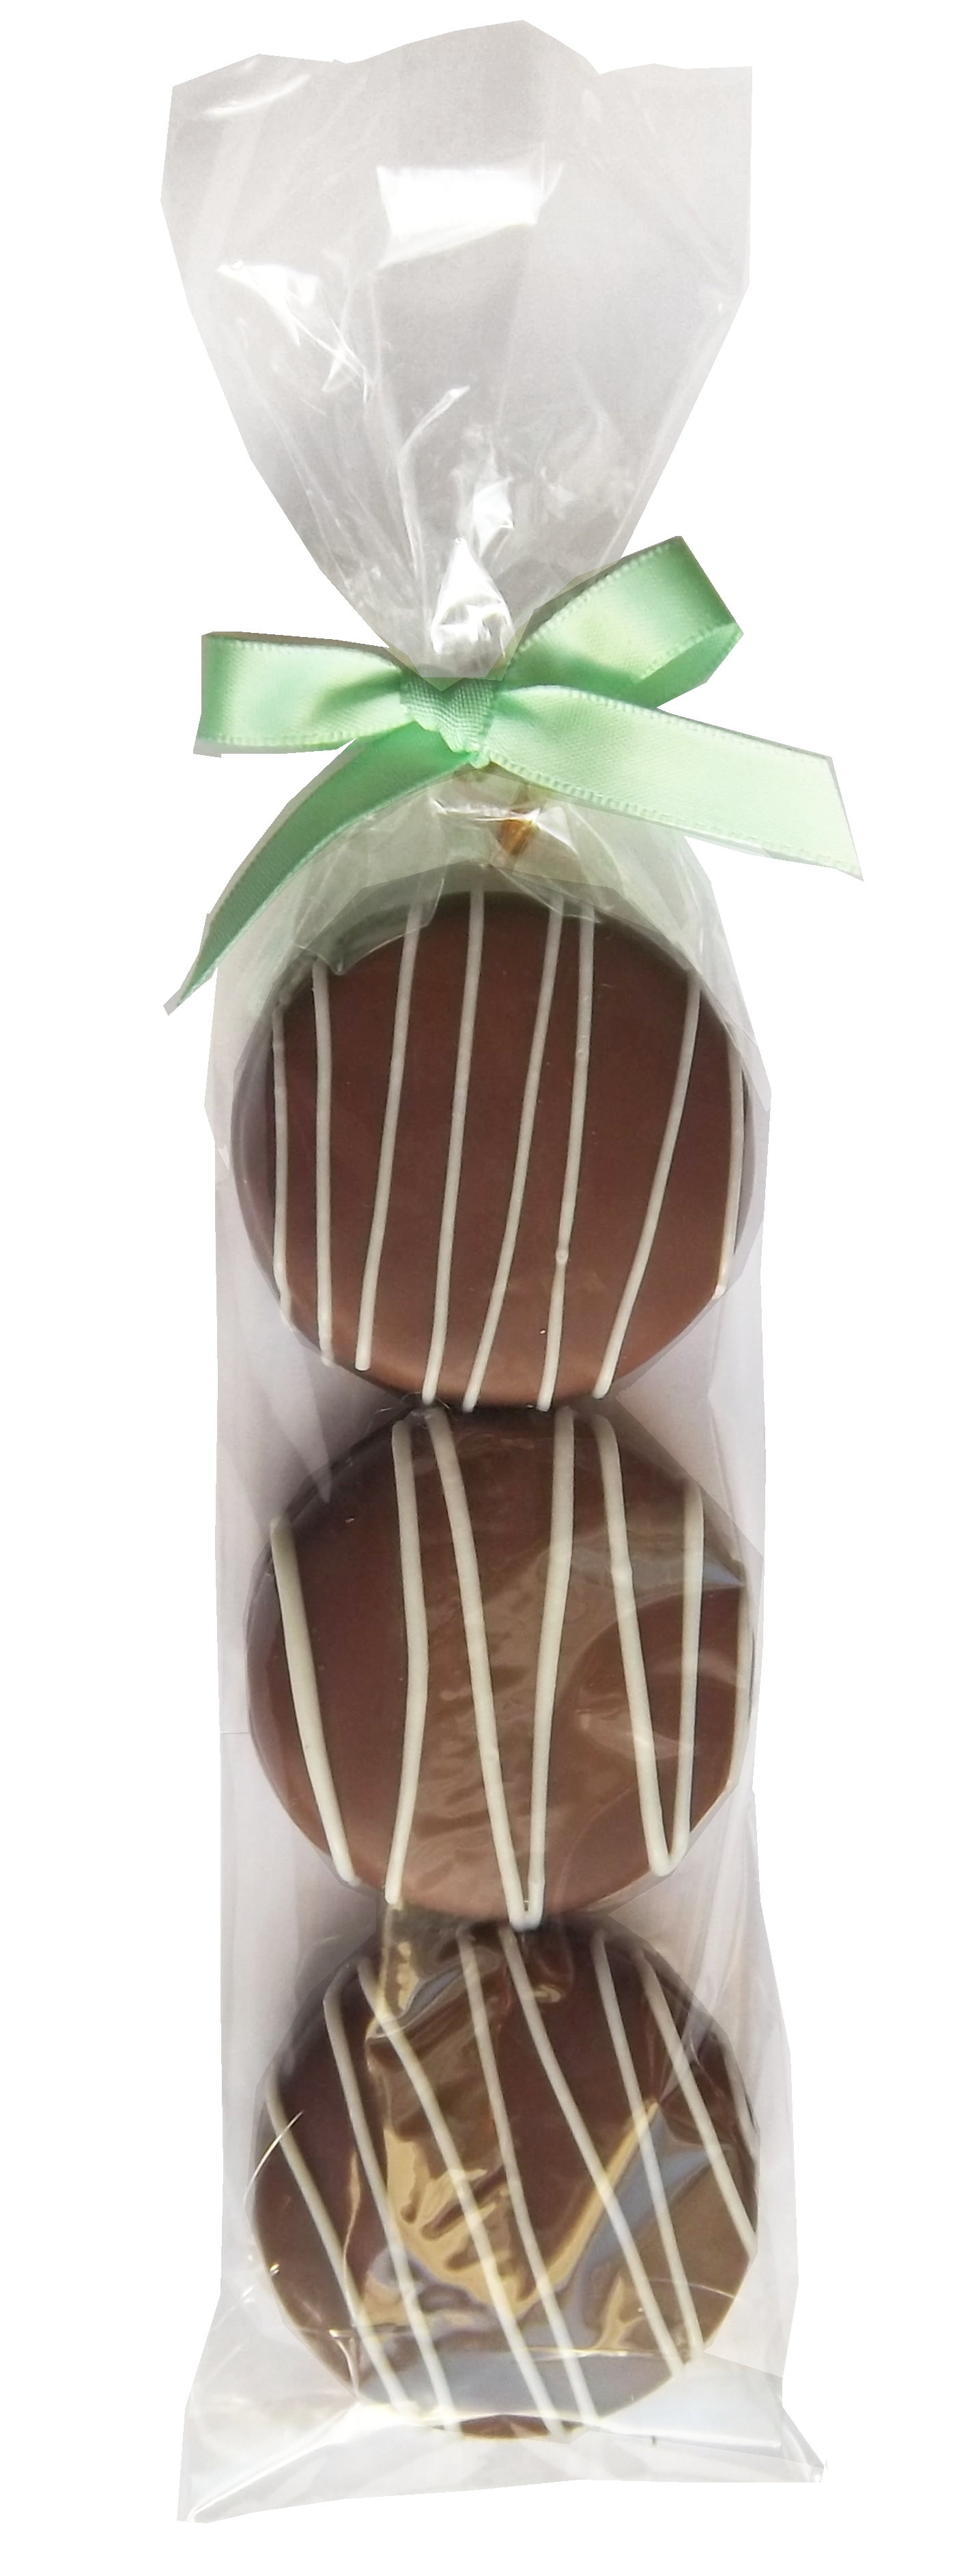 Gourmet Chocolate Dipped Oreo® - 3 Pack - White Chocolate Drizzled 00001